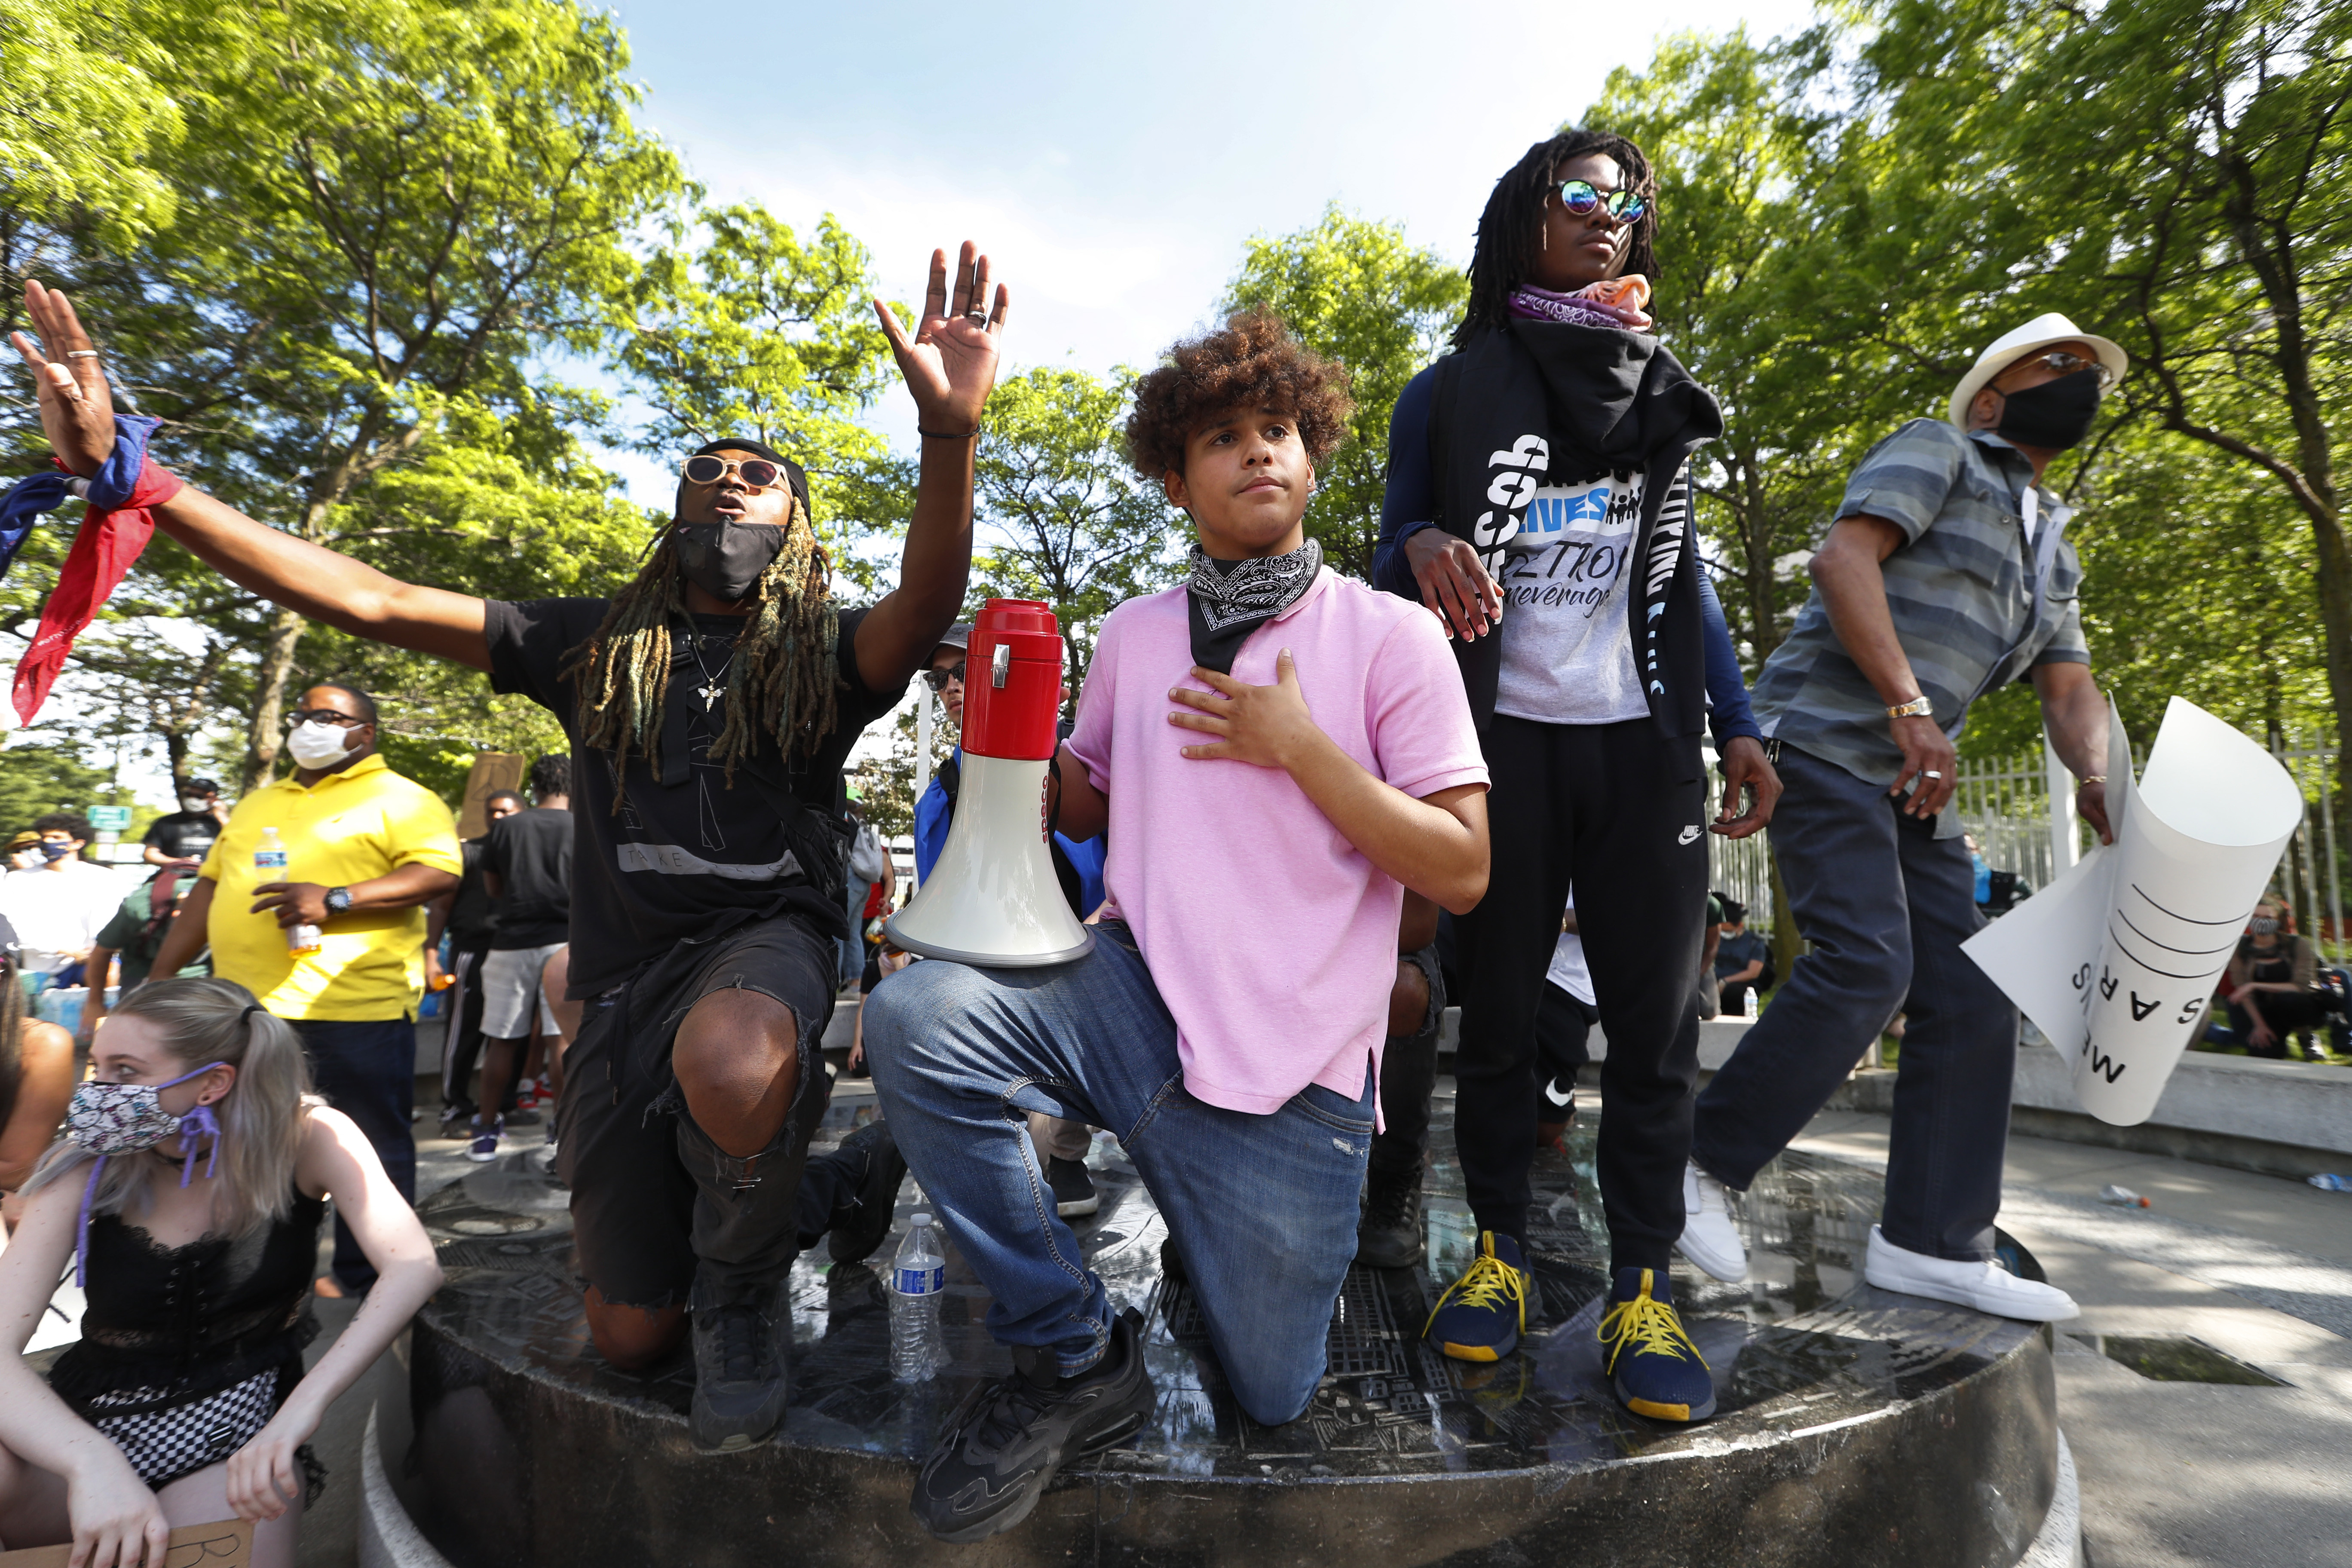 In big cities and small towns, whether liberal or conservative, the new young organizers are taking matters into their own hands and bringing together hundreds or thousands of people to peacefully press for change.